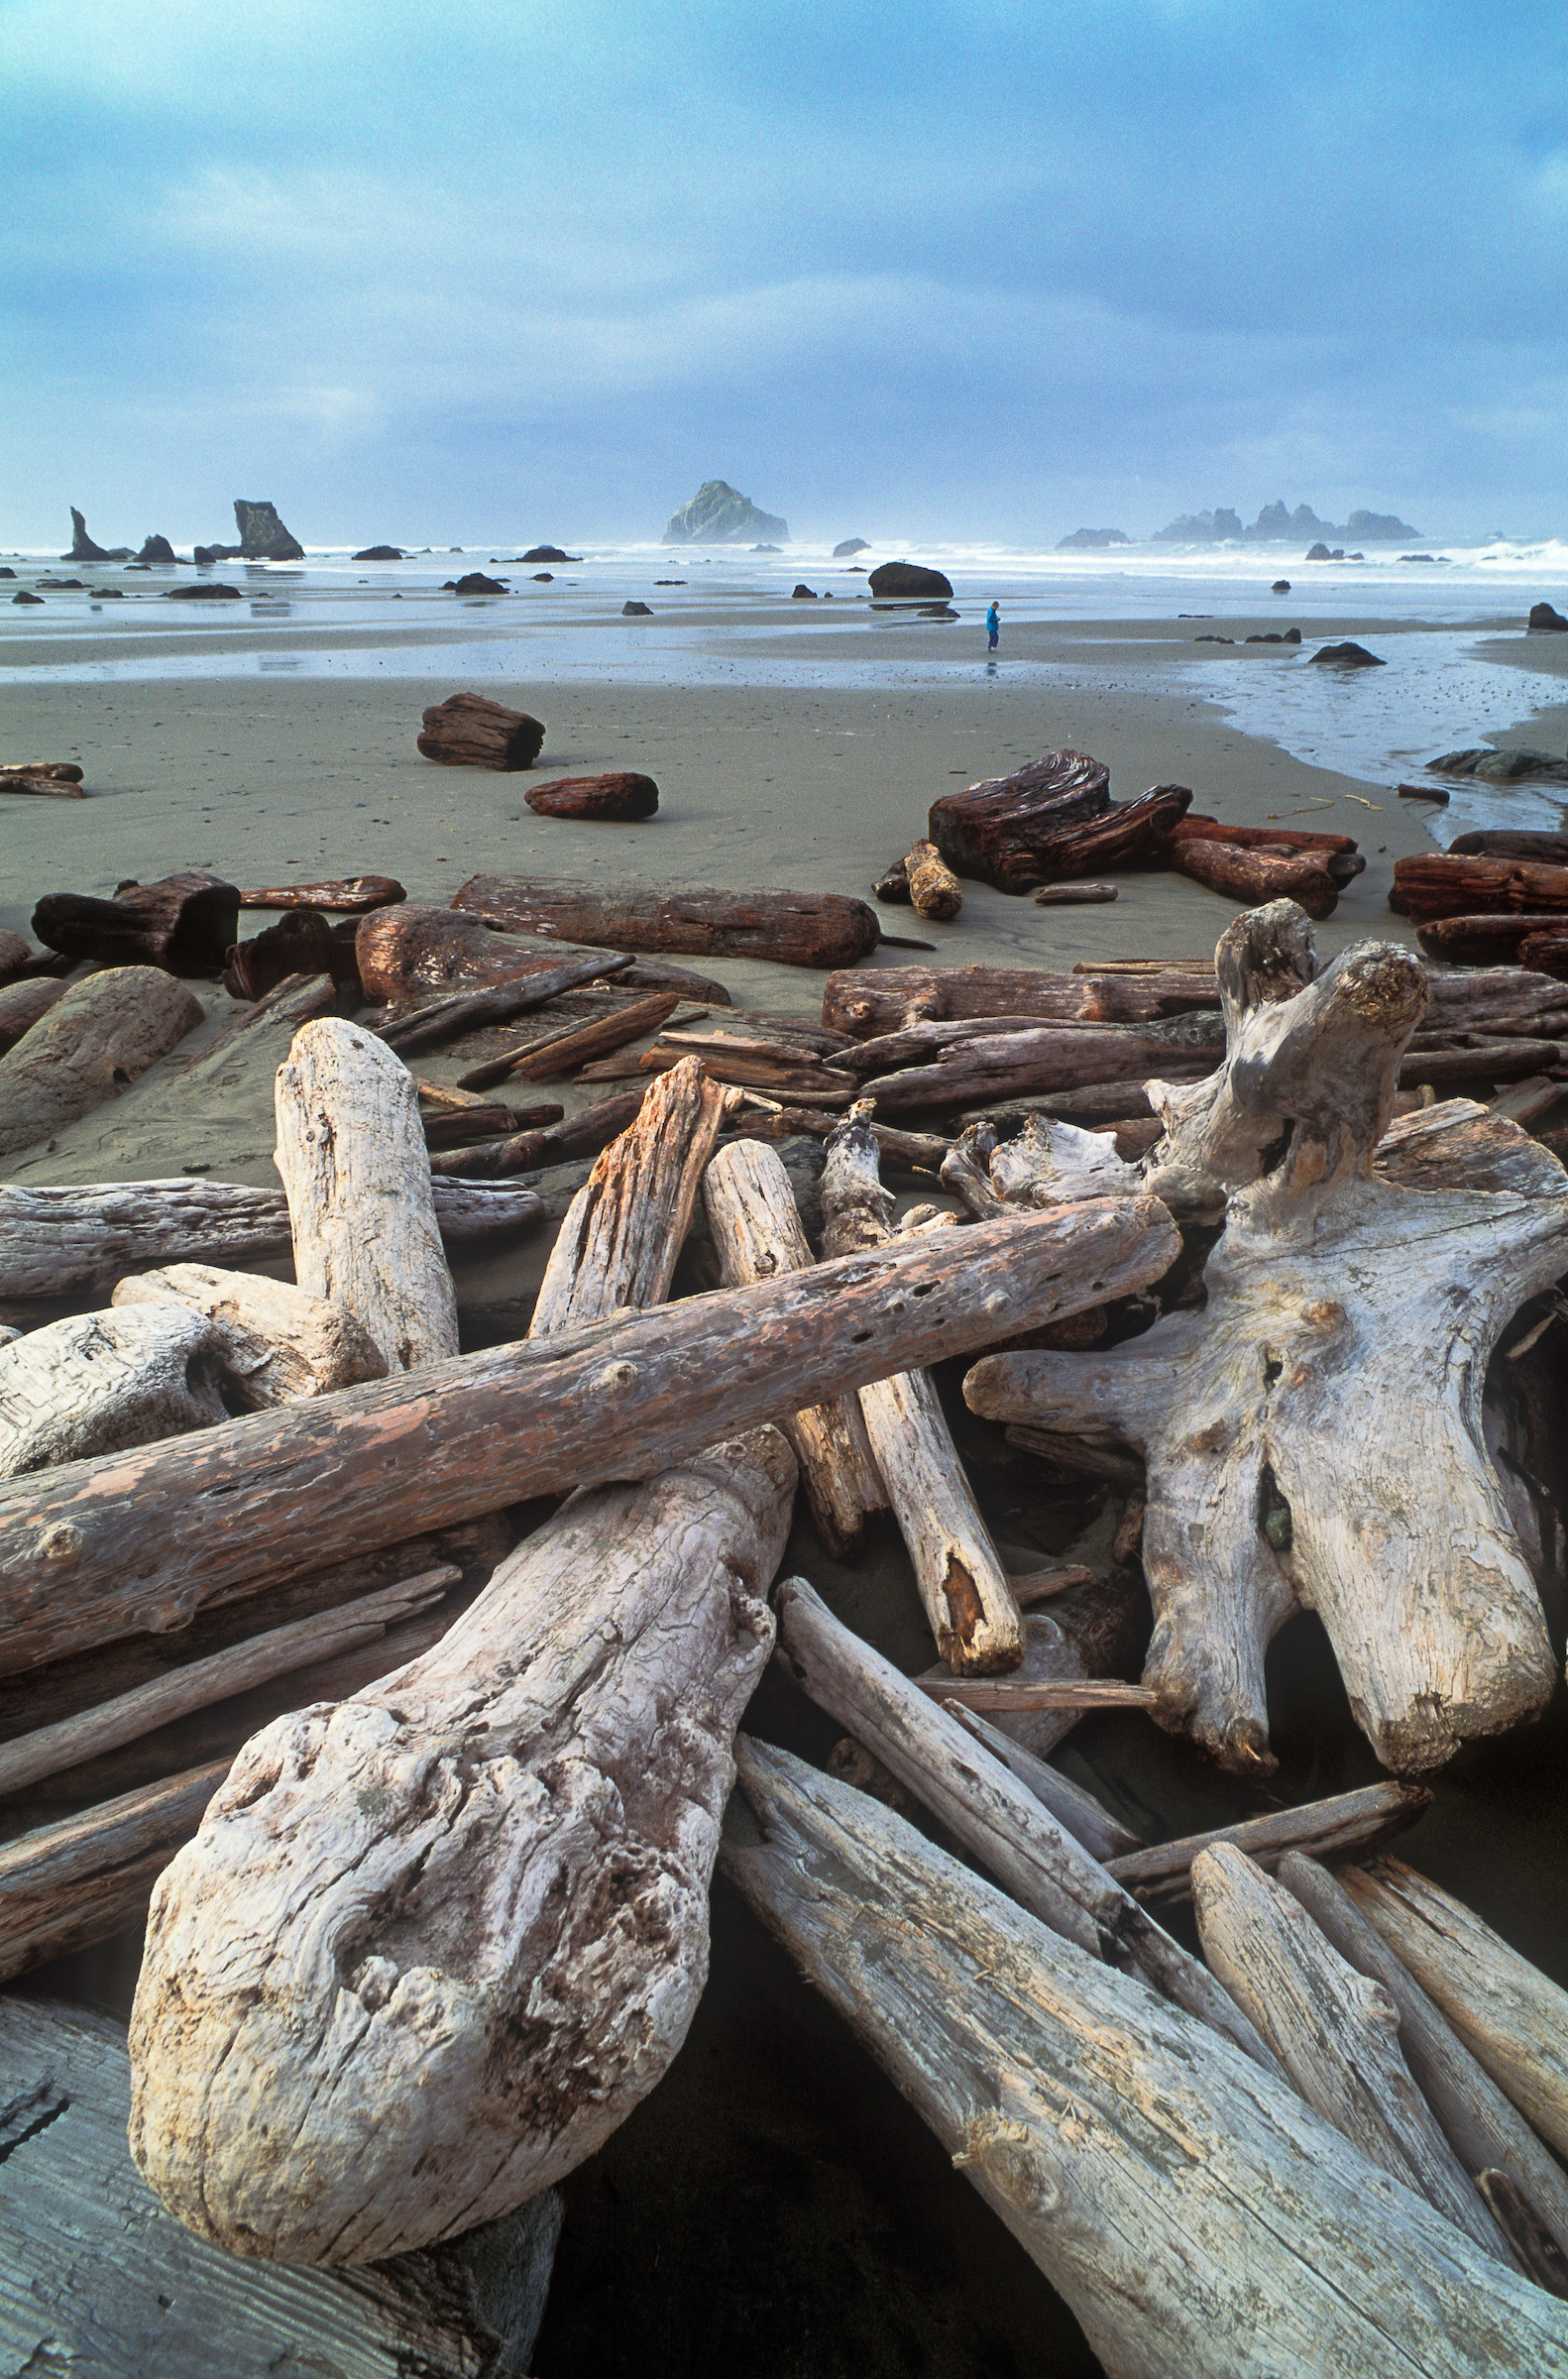 muench-workshops-Bandon-Beach-Oregon-coast-1.jpg